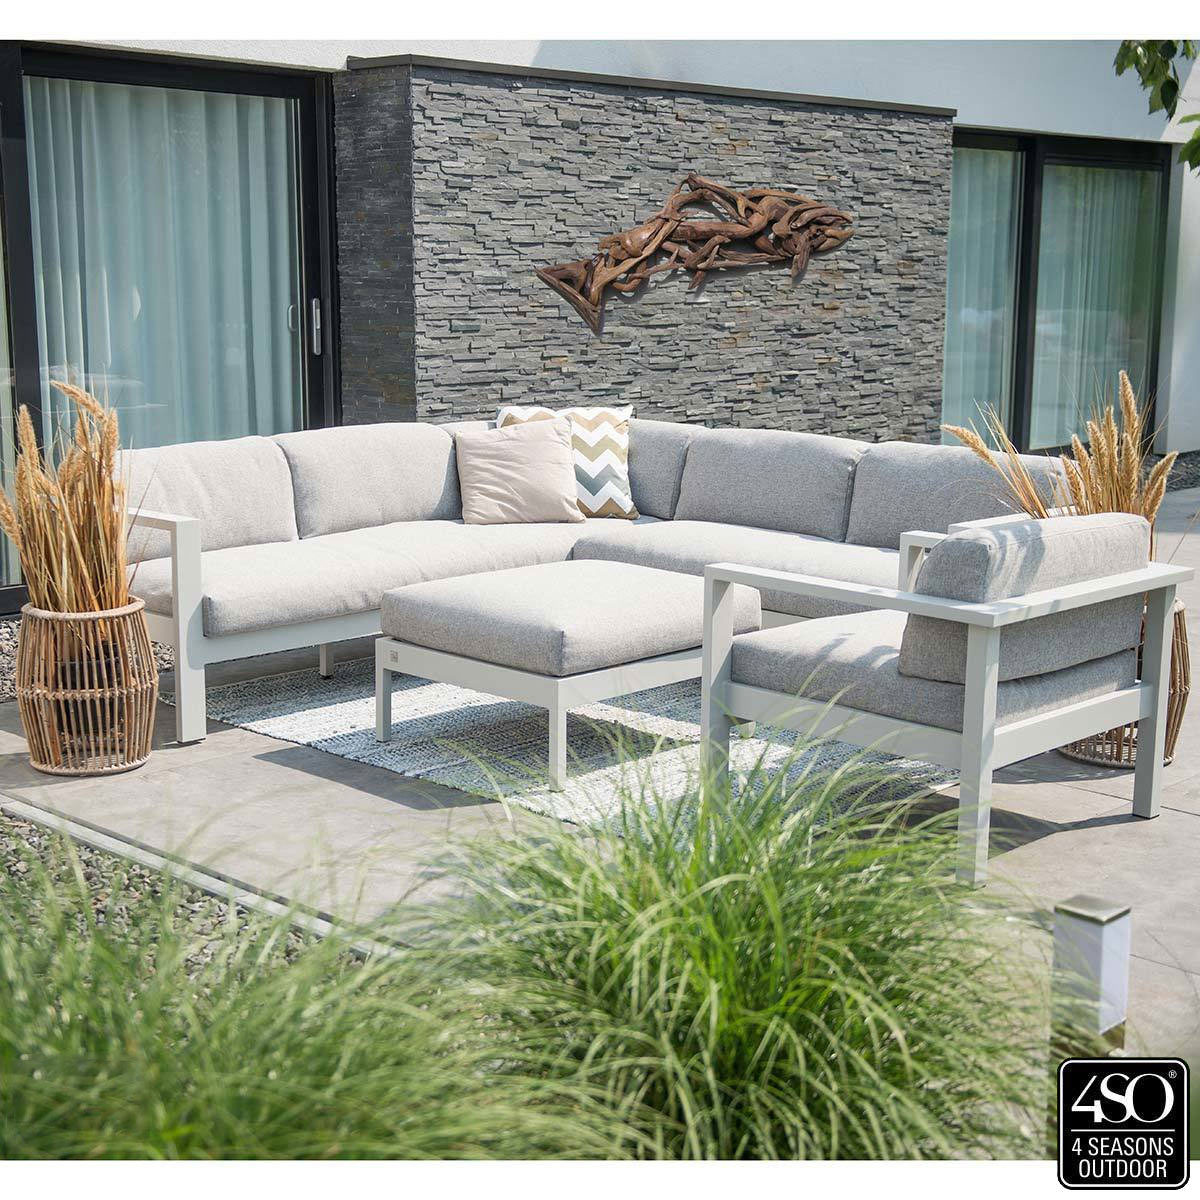 4 Seasons Outdoor Saxon 4 Piece Corner Lounge Set Left Arm Rest Costco Uk